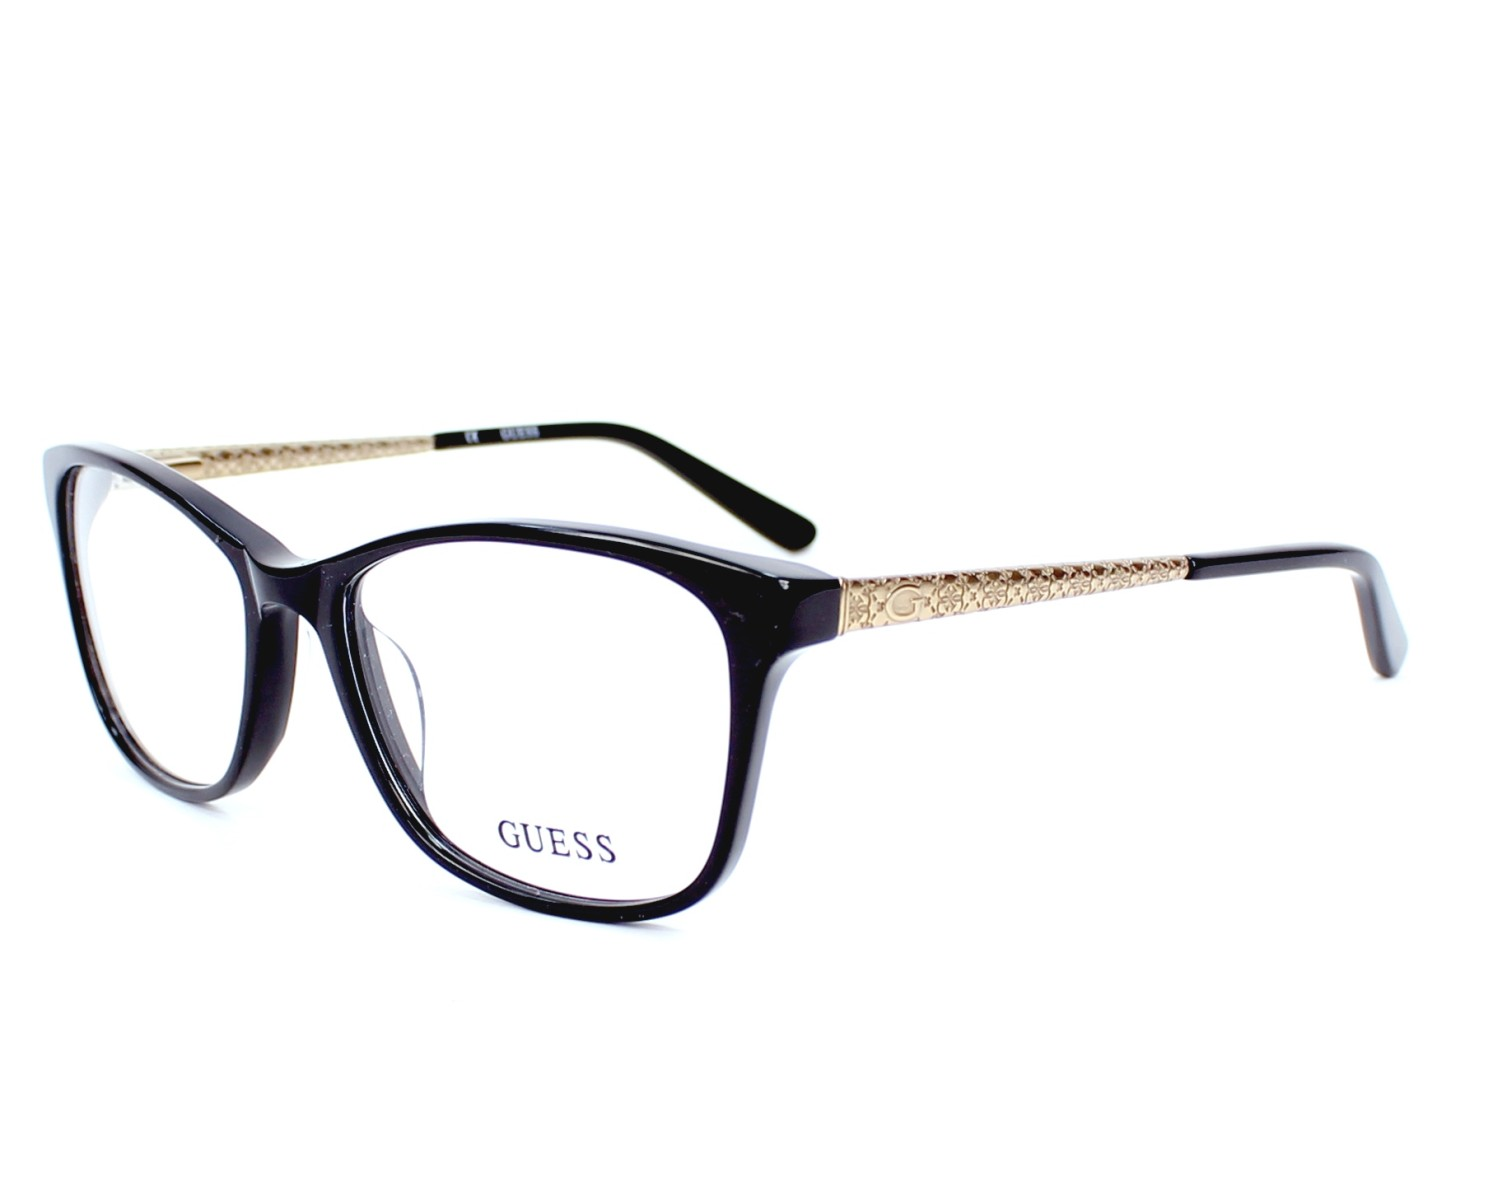 Vogue Eyeglass Frames For Women